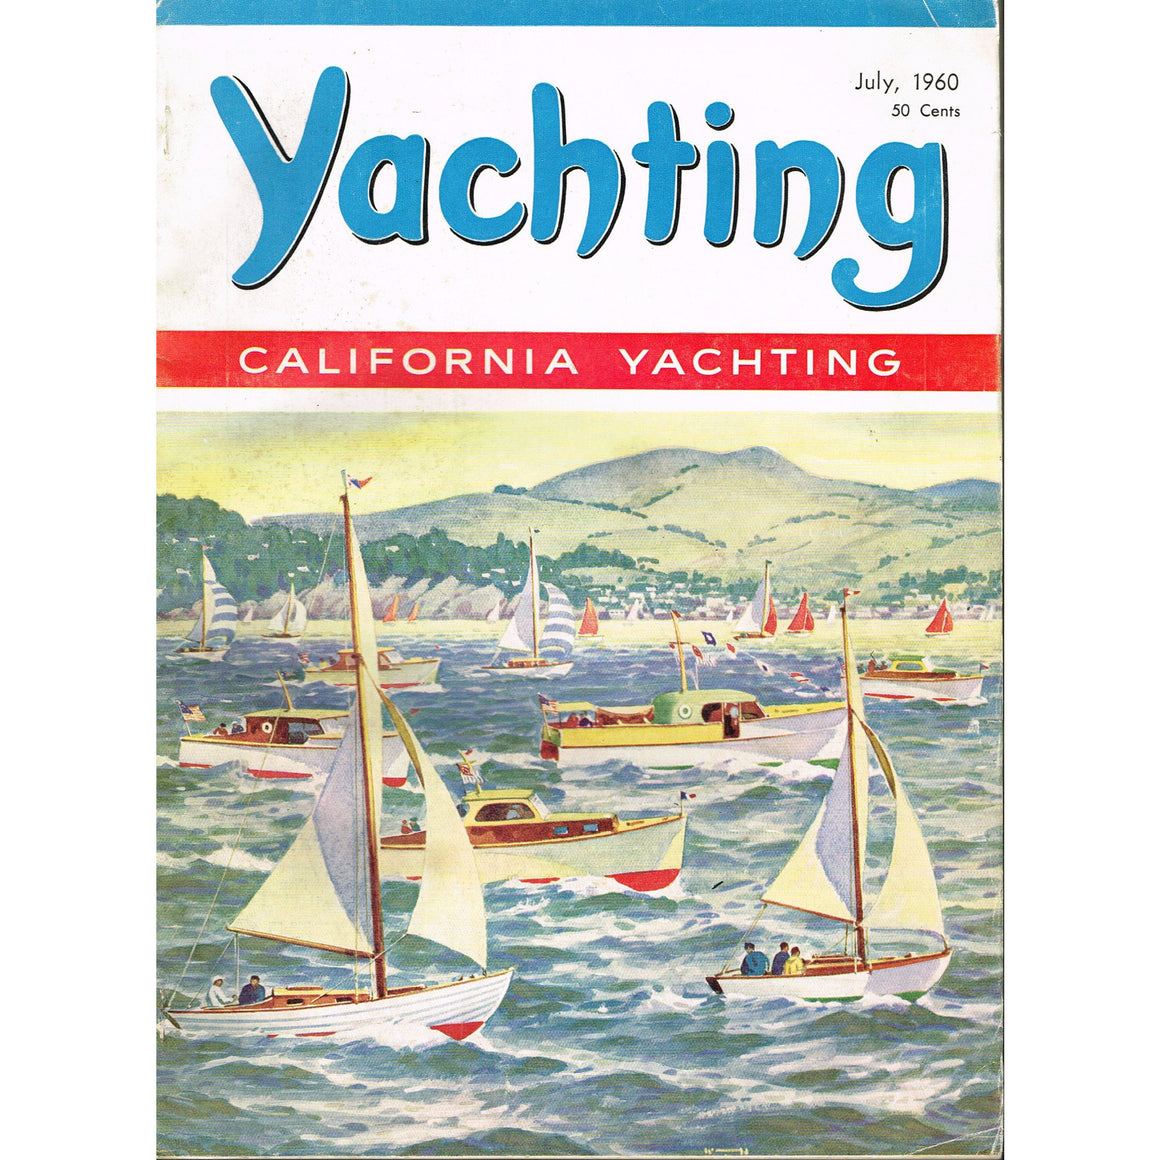 Yachting: California Yachting